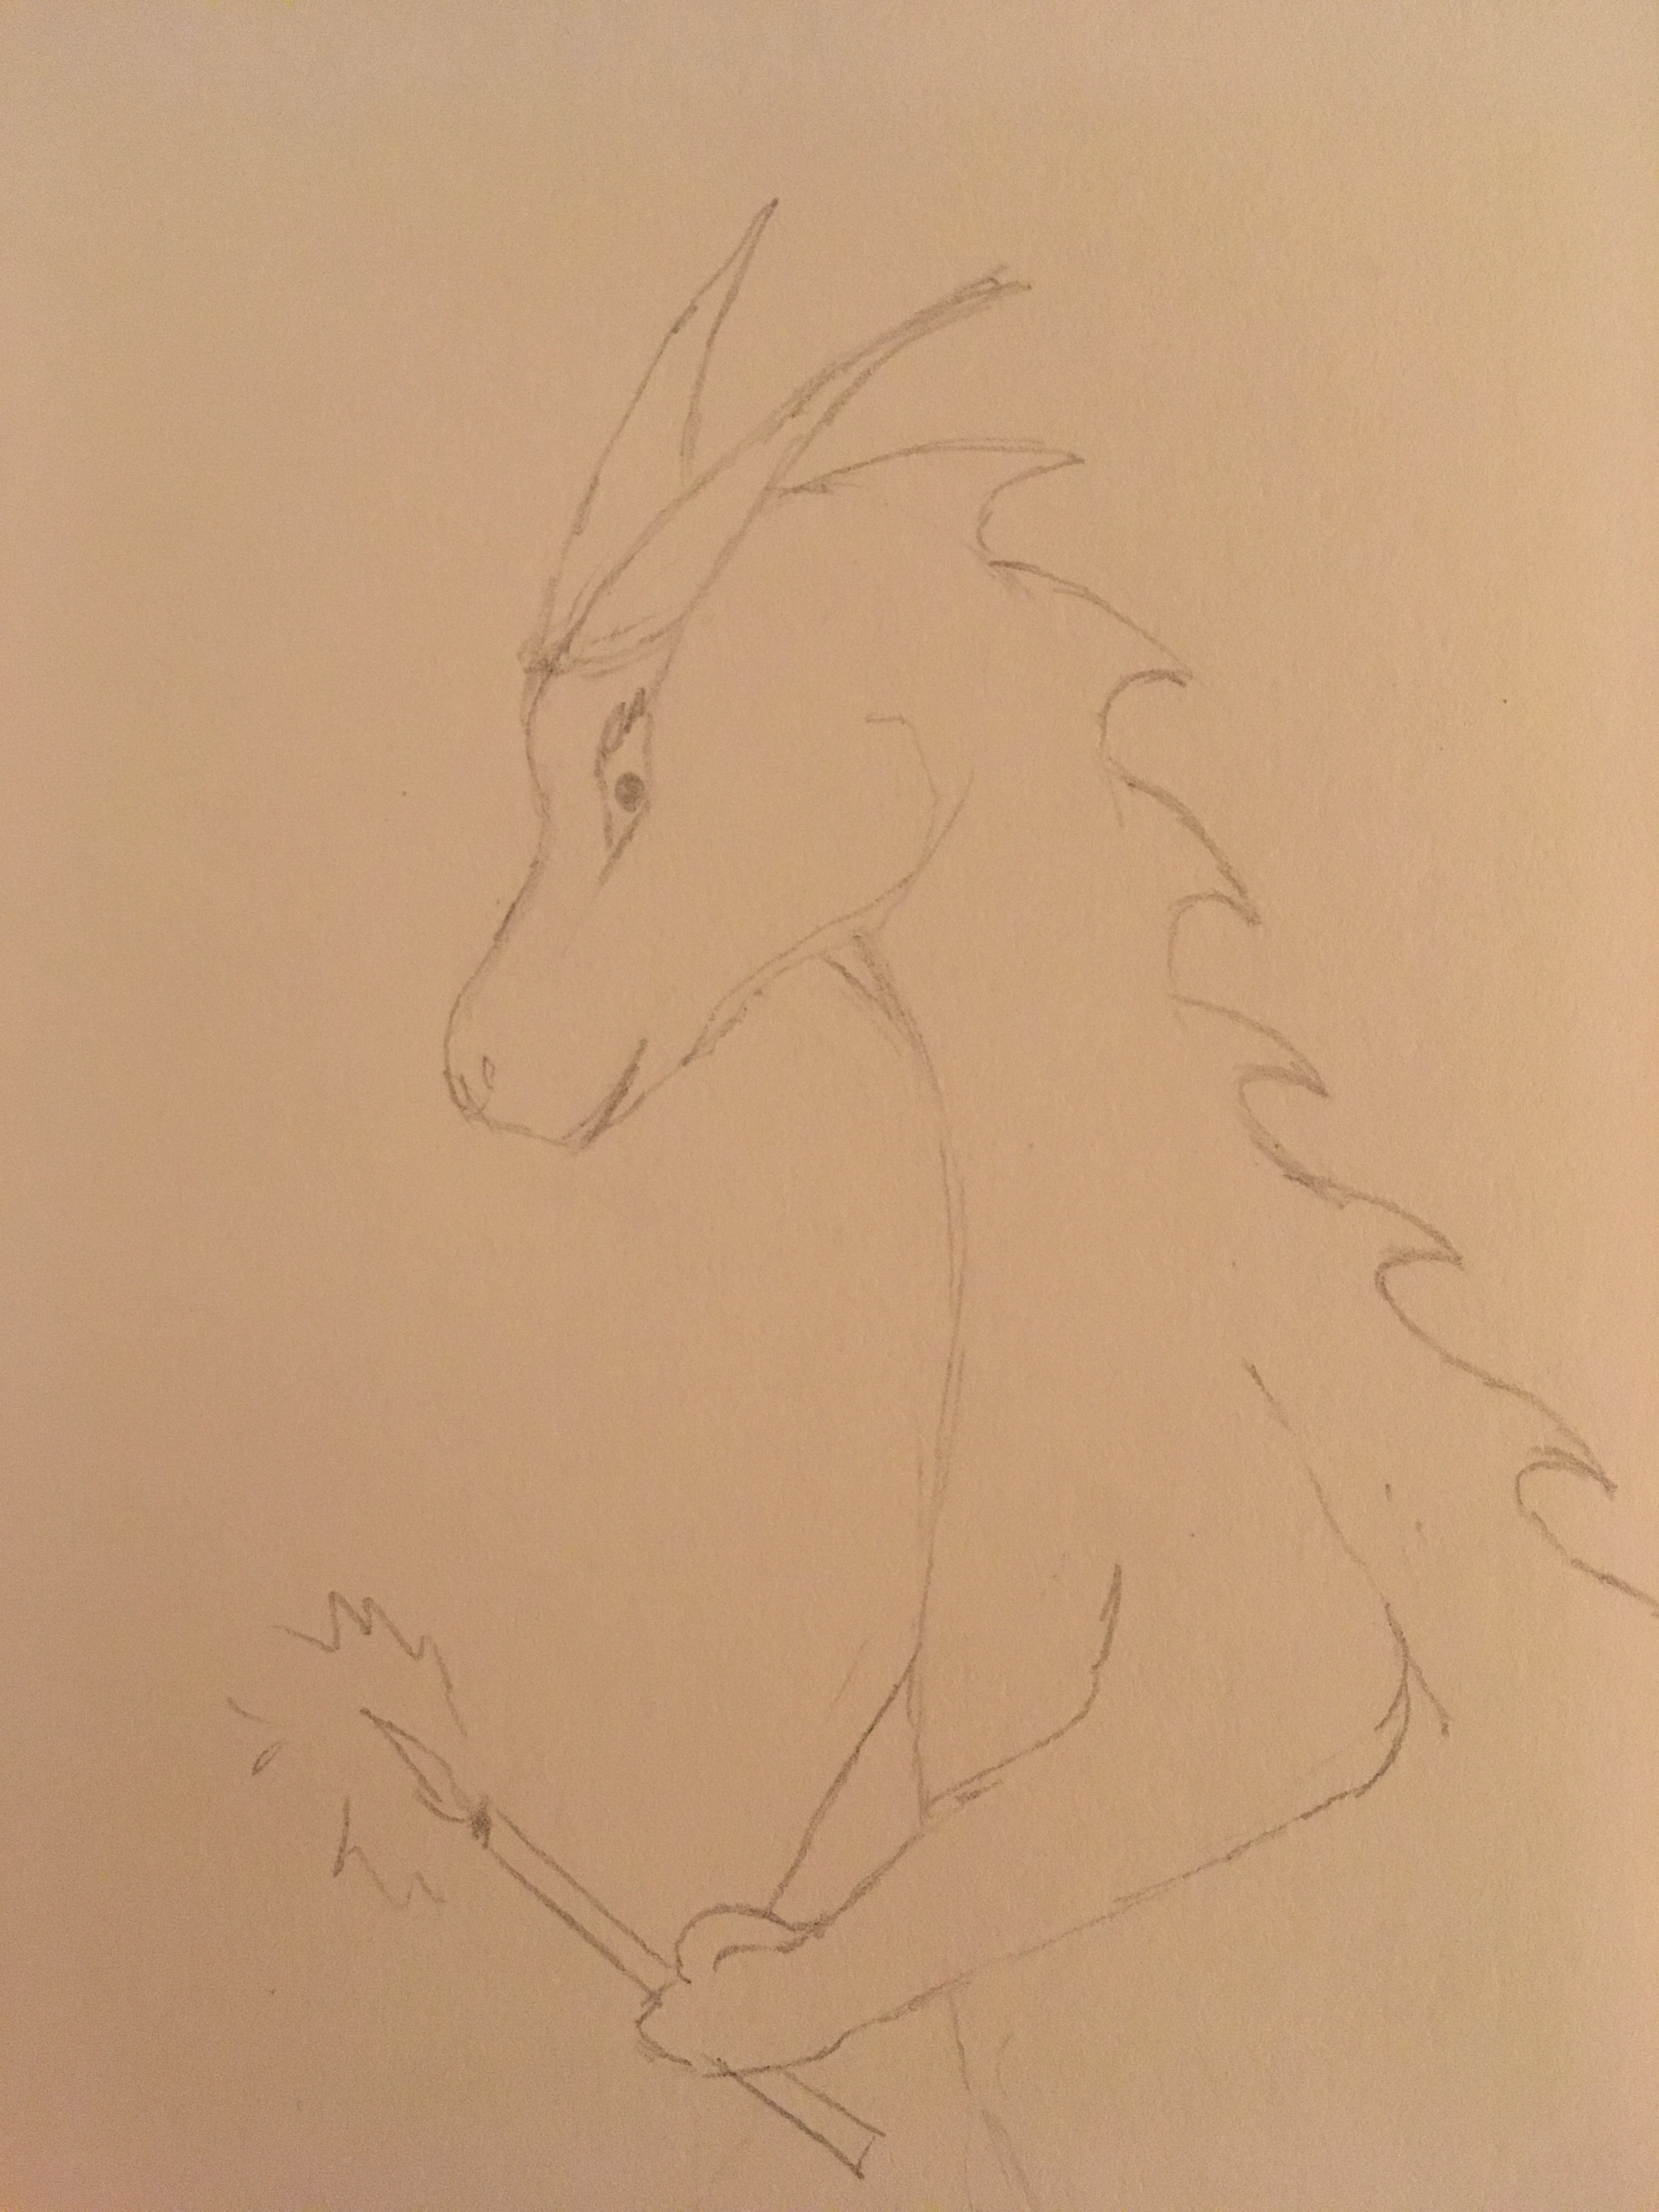 Dragon holding a candle